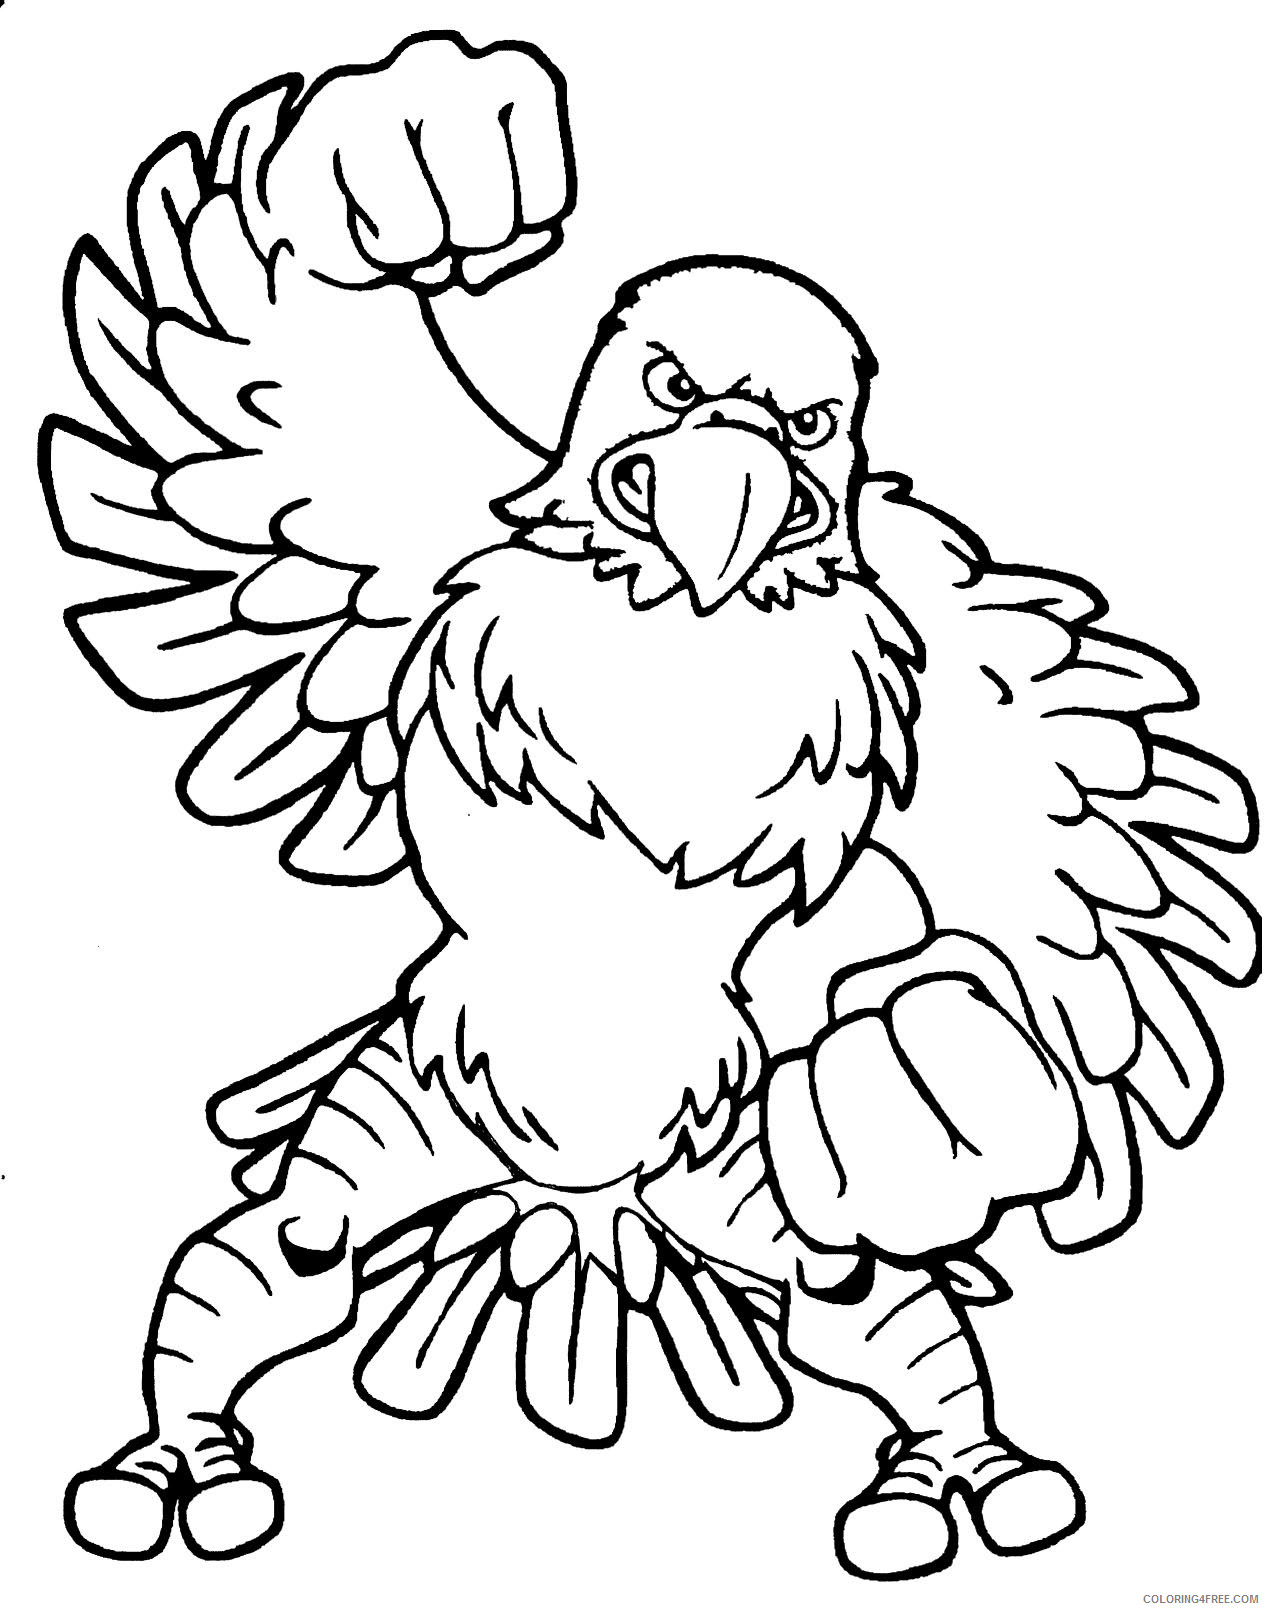 Mascot Eagles Coloring Pages eagle mascot free cliparts Printable Coloring4free